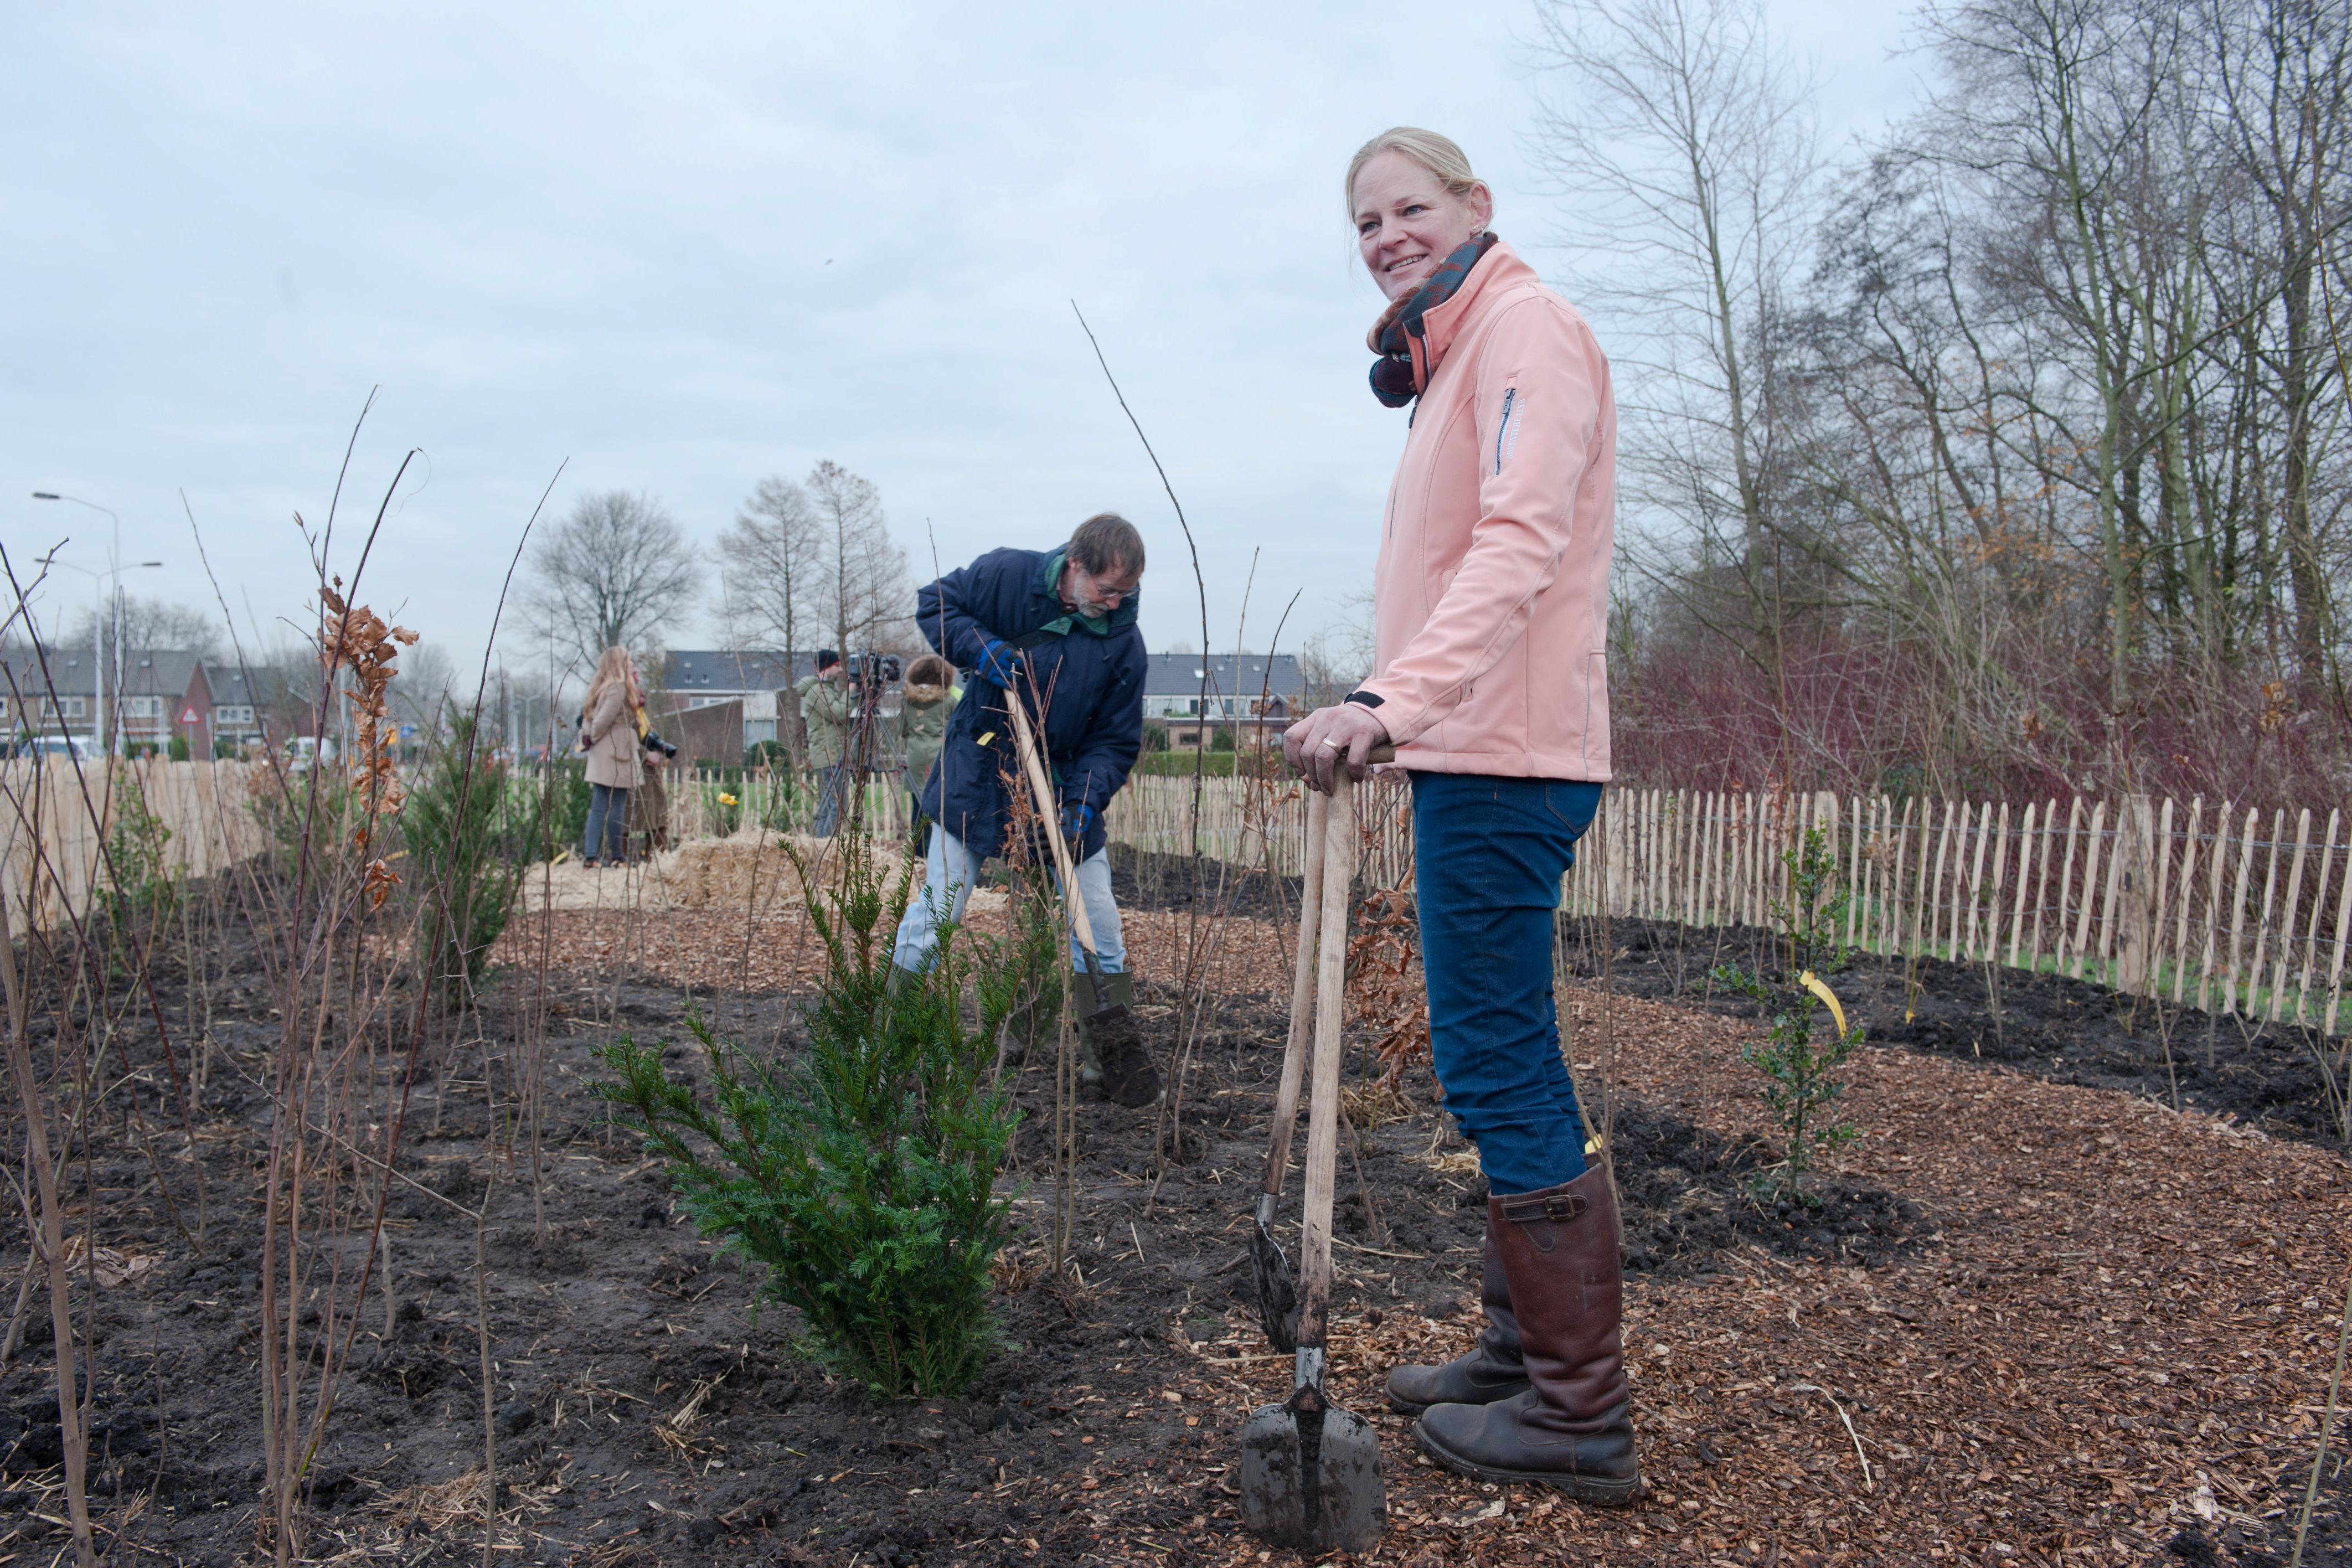 Volunteers have helped create Tiny Forests in the Netherlands (IVN Natuureducatie/PA)